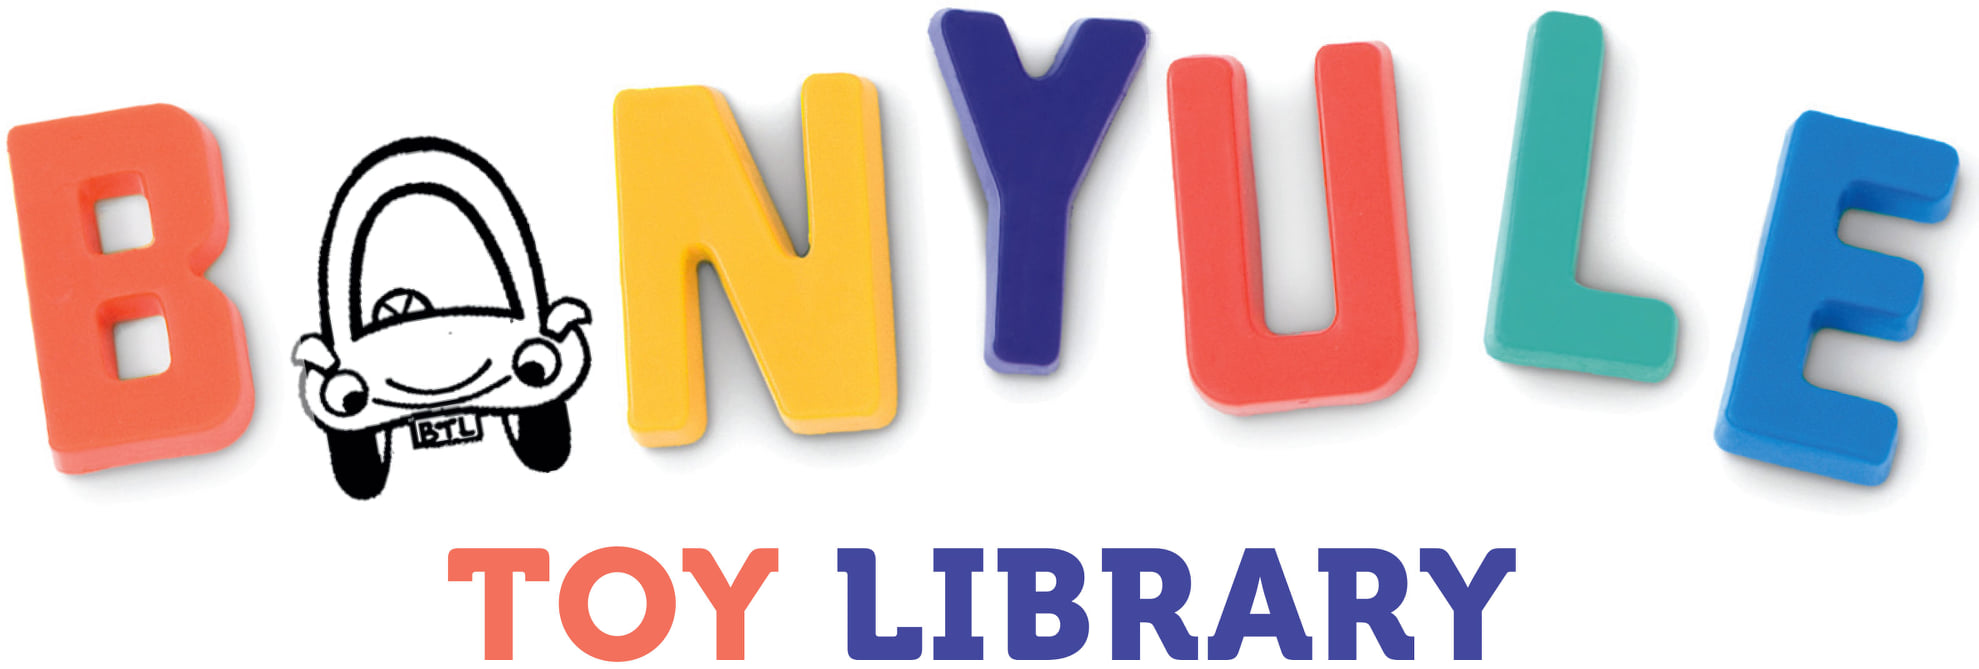 banyule toy library